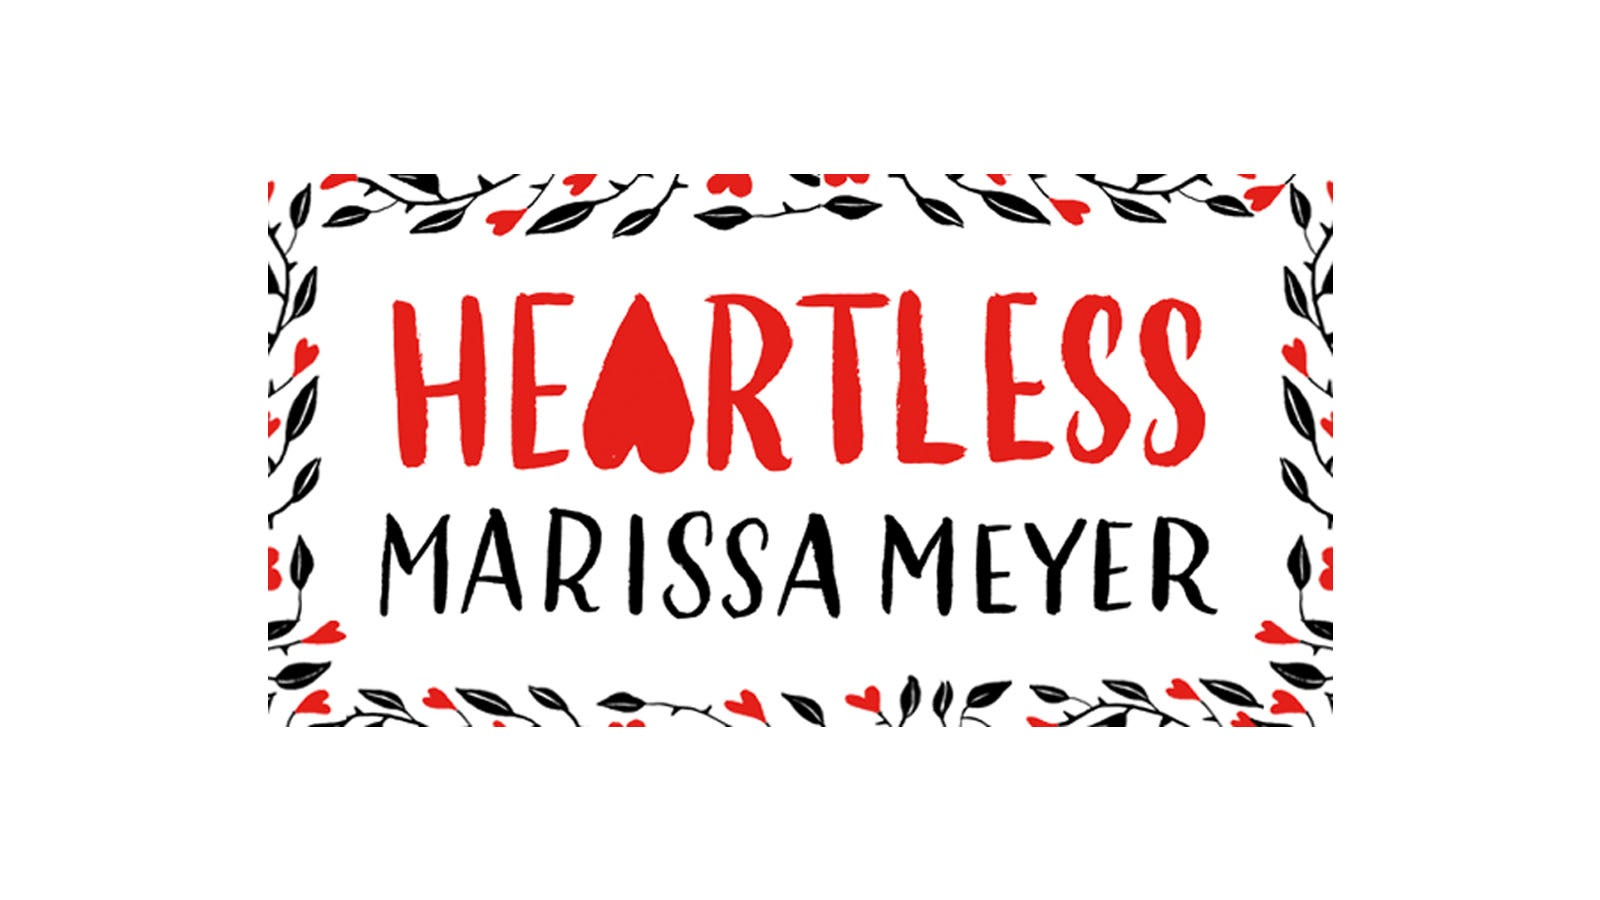 Section of Heartless book jacket